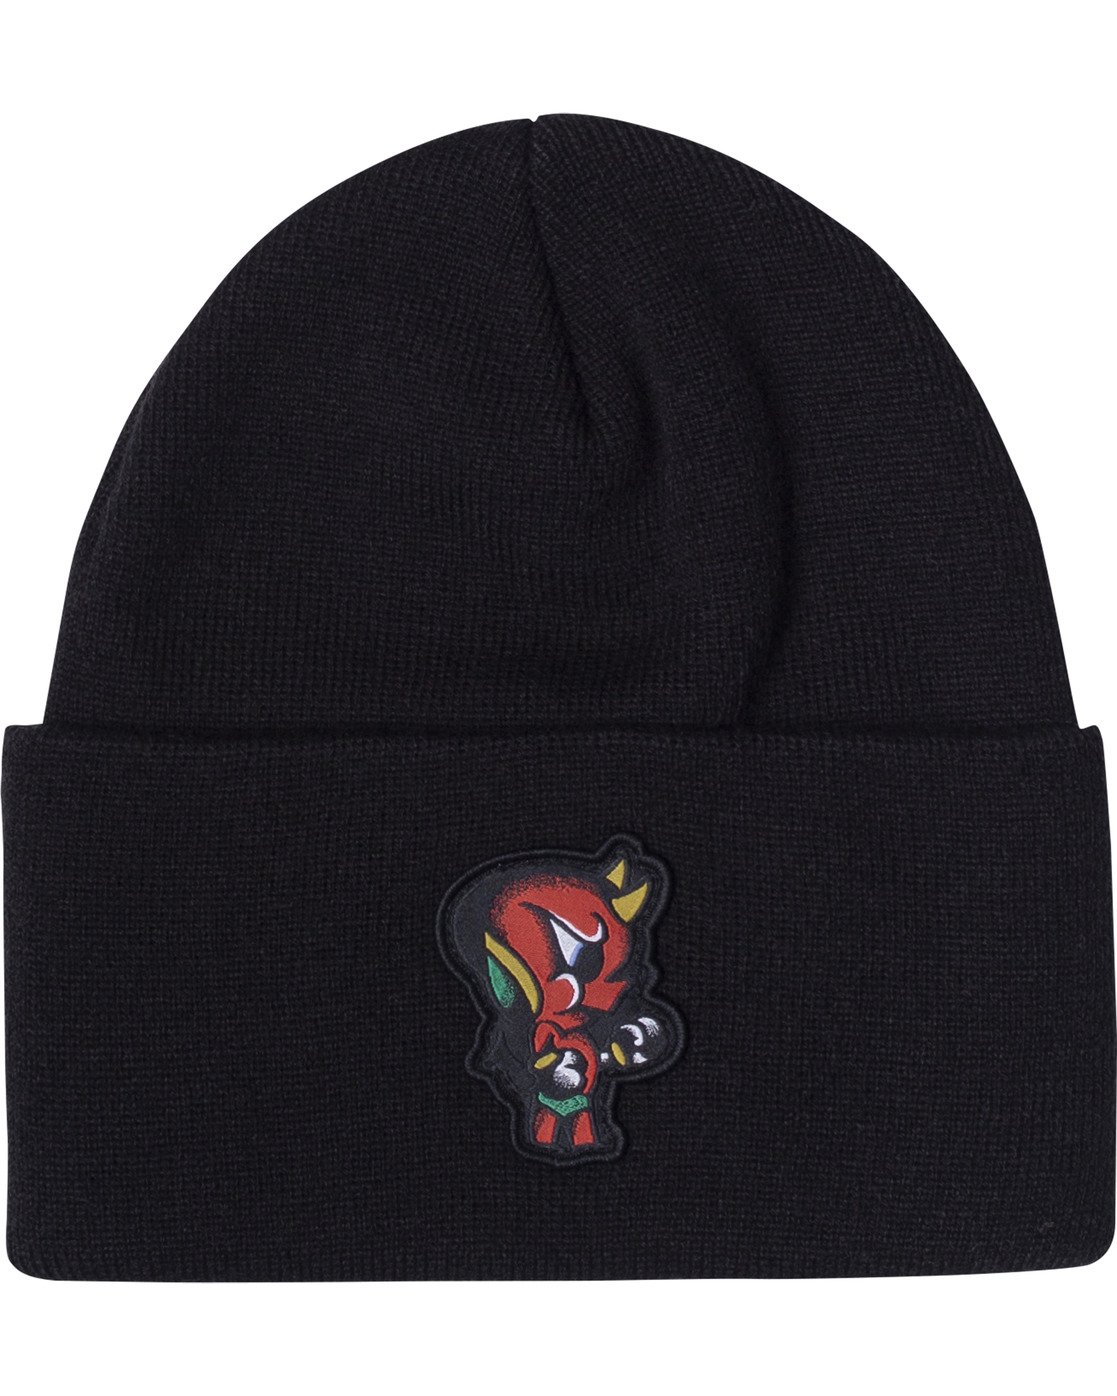 0 EVERLAST X SMITH STREET SPORT BEANIE Black AVYHA00162 RVCA